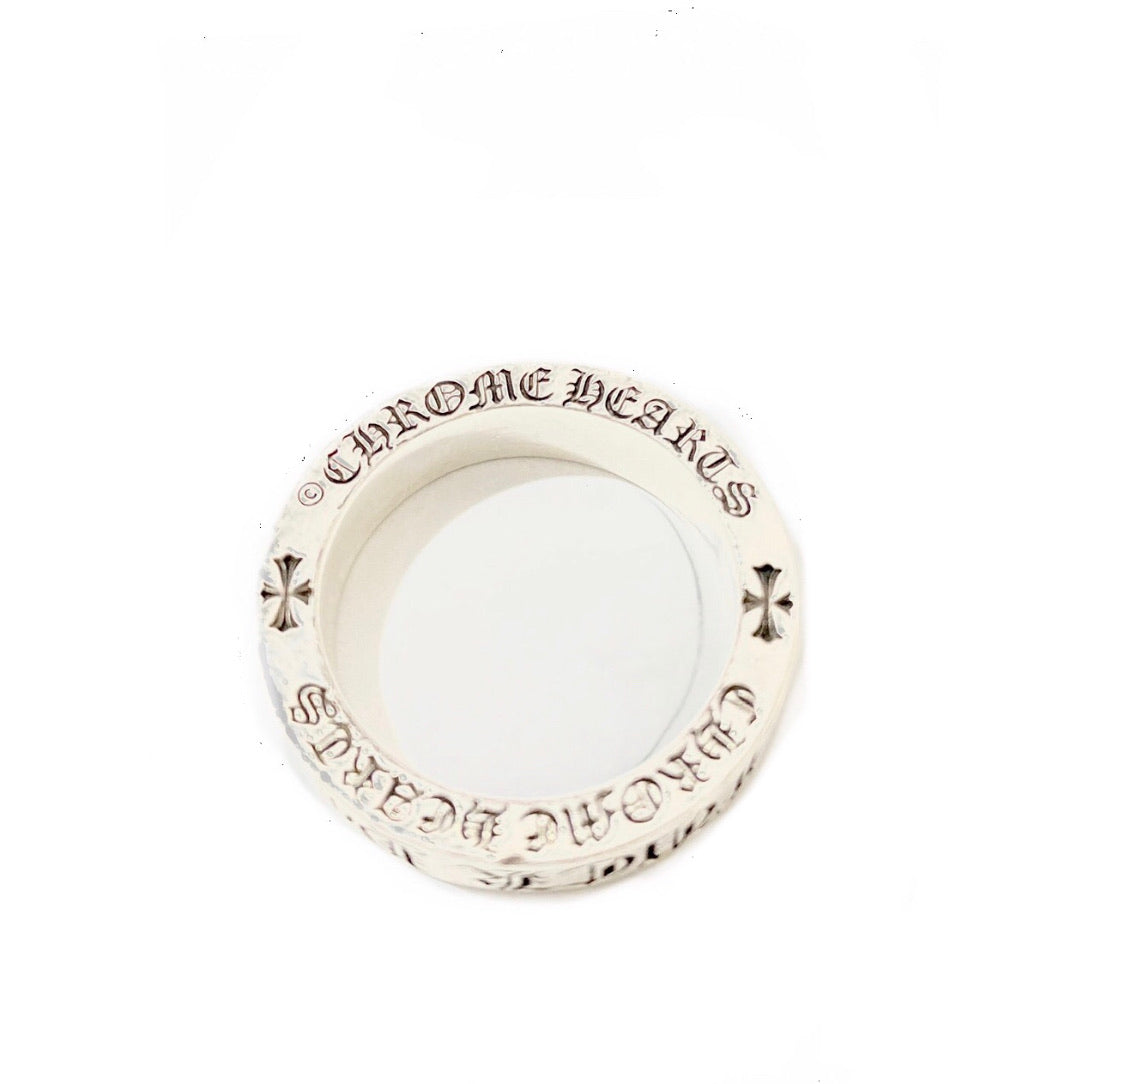 Chrome Hearts 'Fuck You' .925 Silver Ring